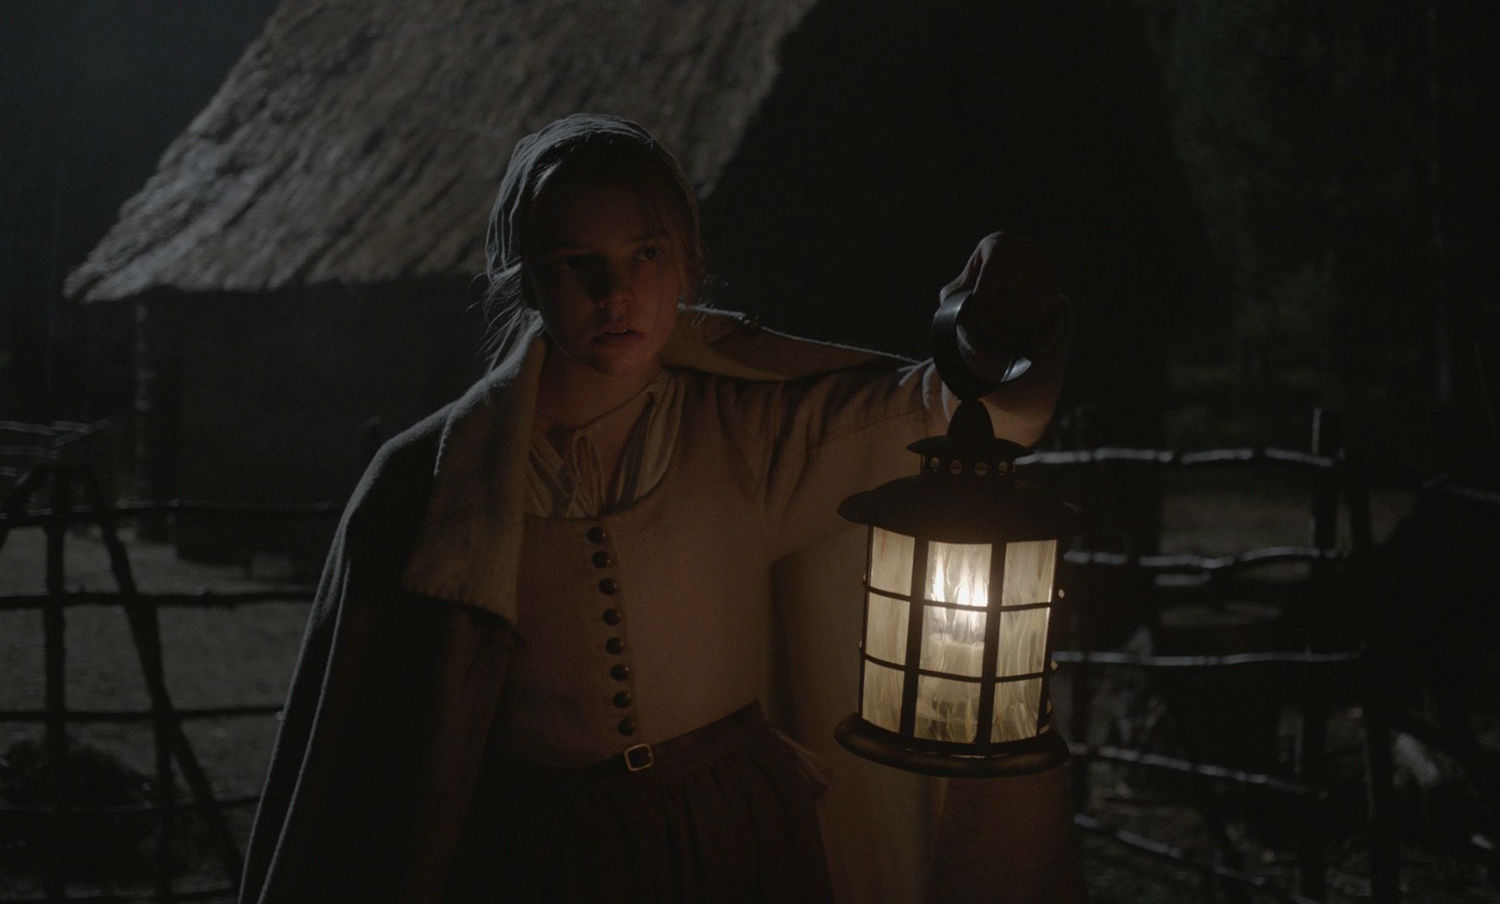 the witch film indie 2015 horror